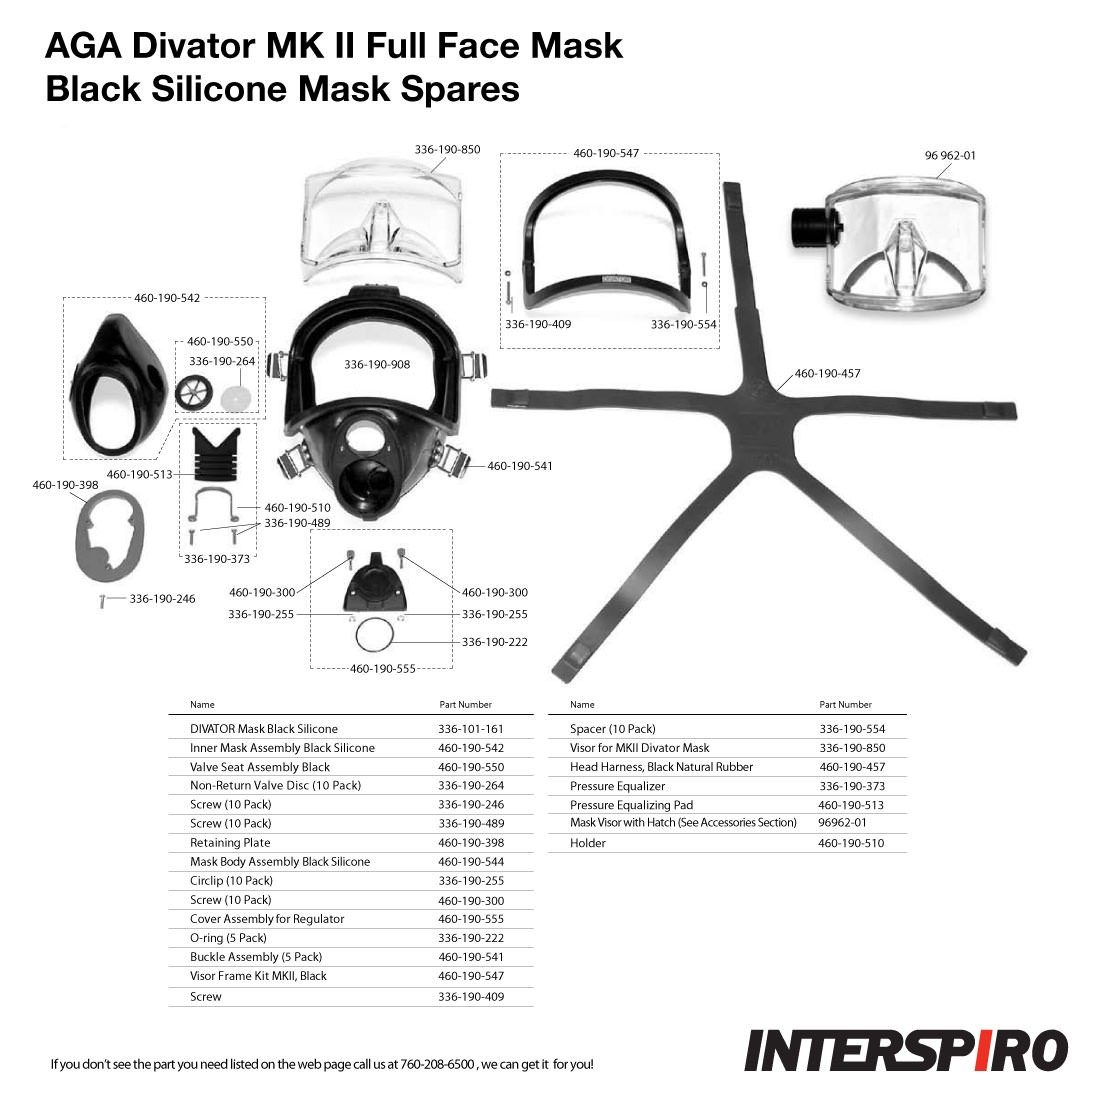 Interspiro AGA Divator MK II Full Face Mask with Demand Regulator - Silicone - Black - Mask Spares